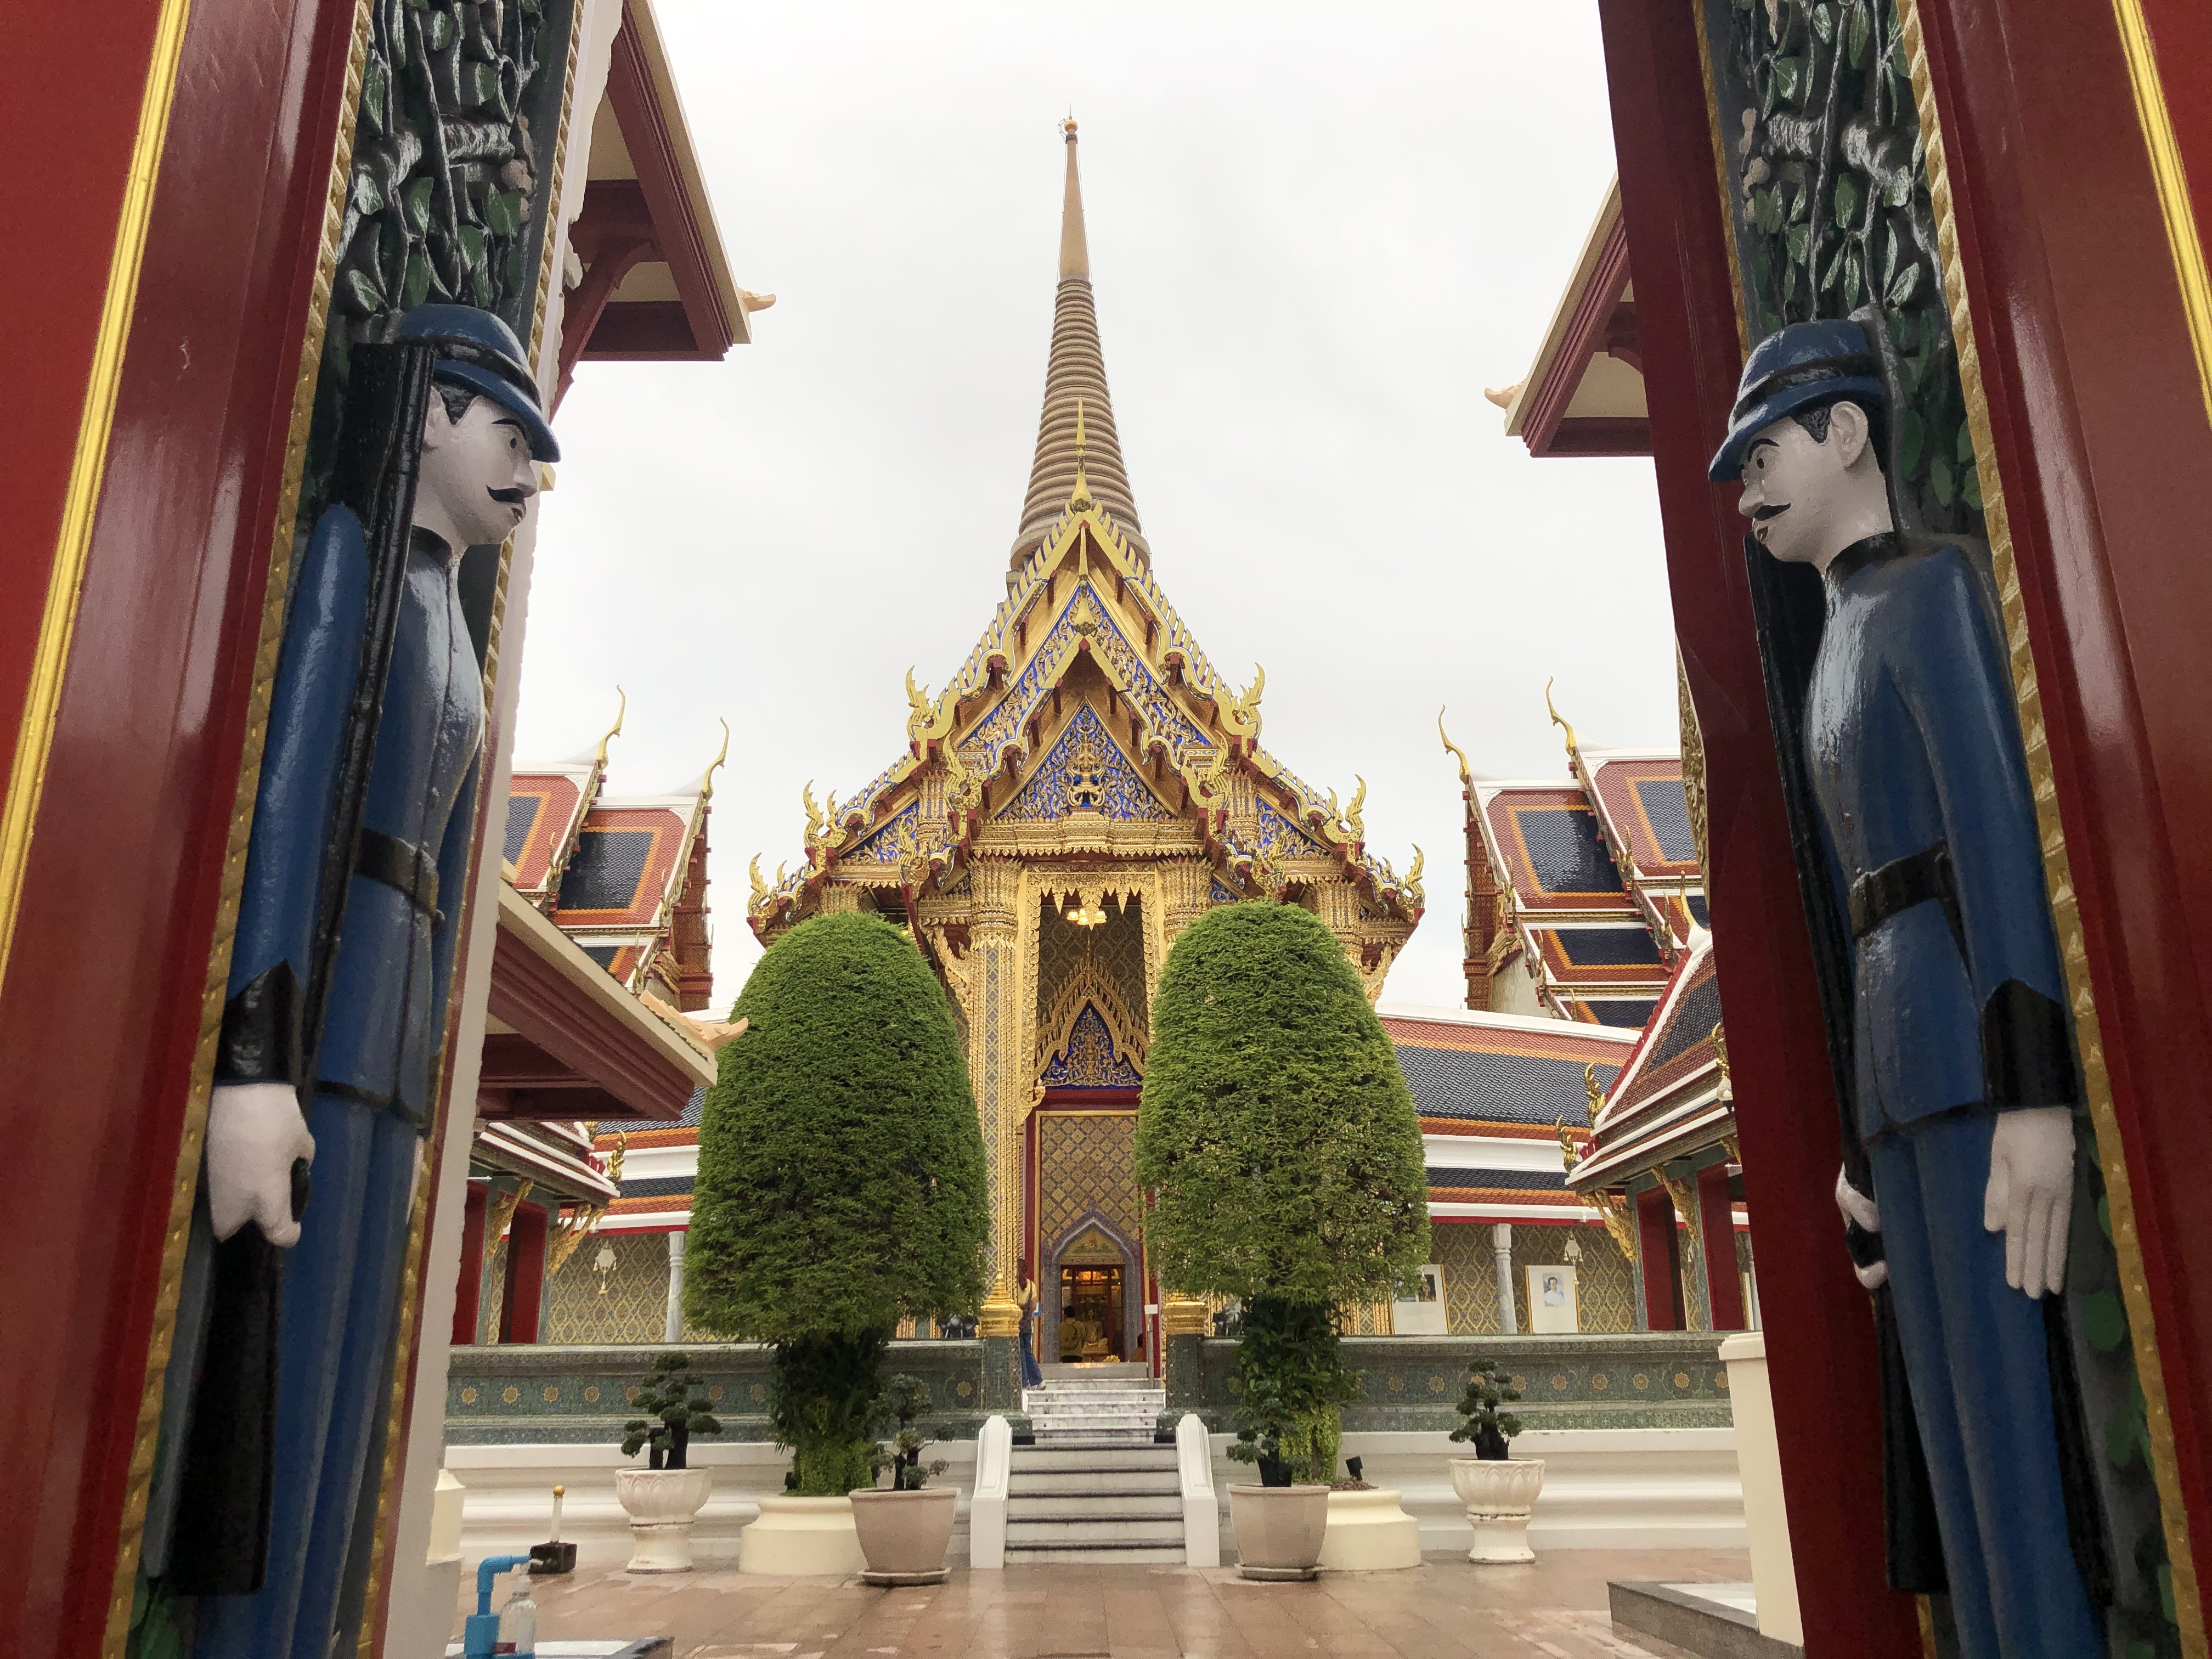 Bangkok's Old Town and Temples image